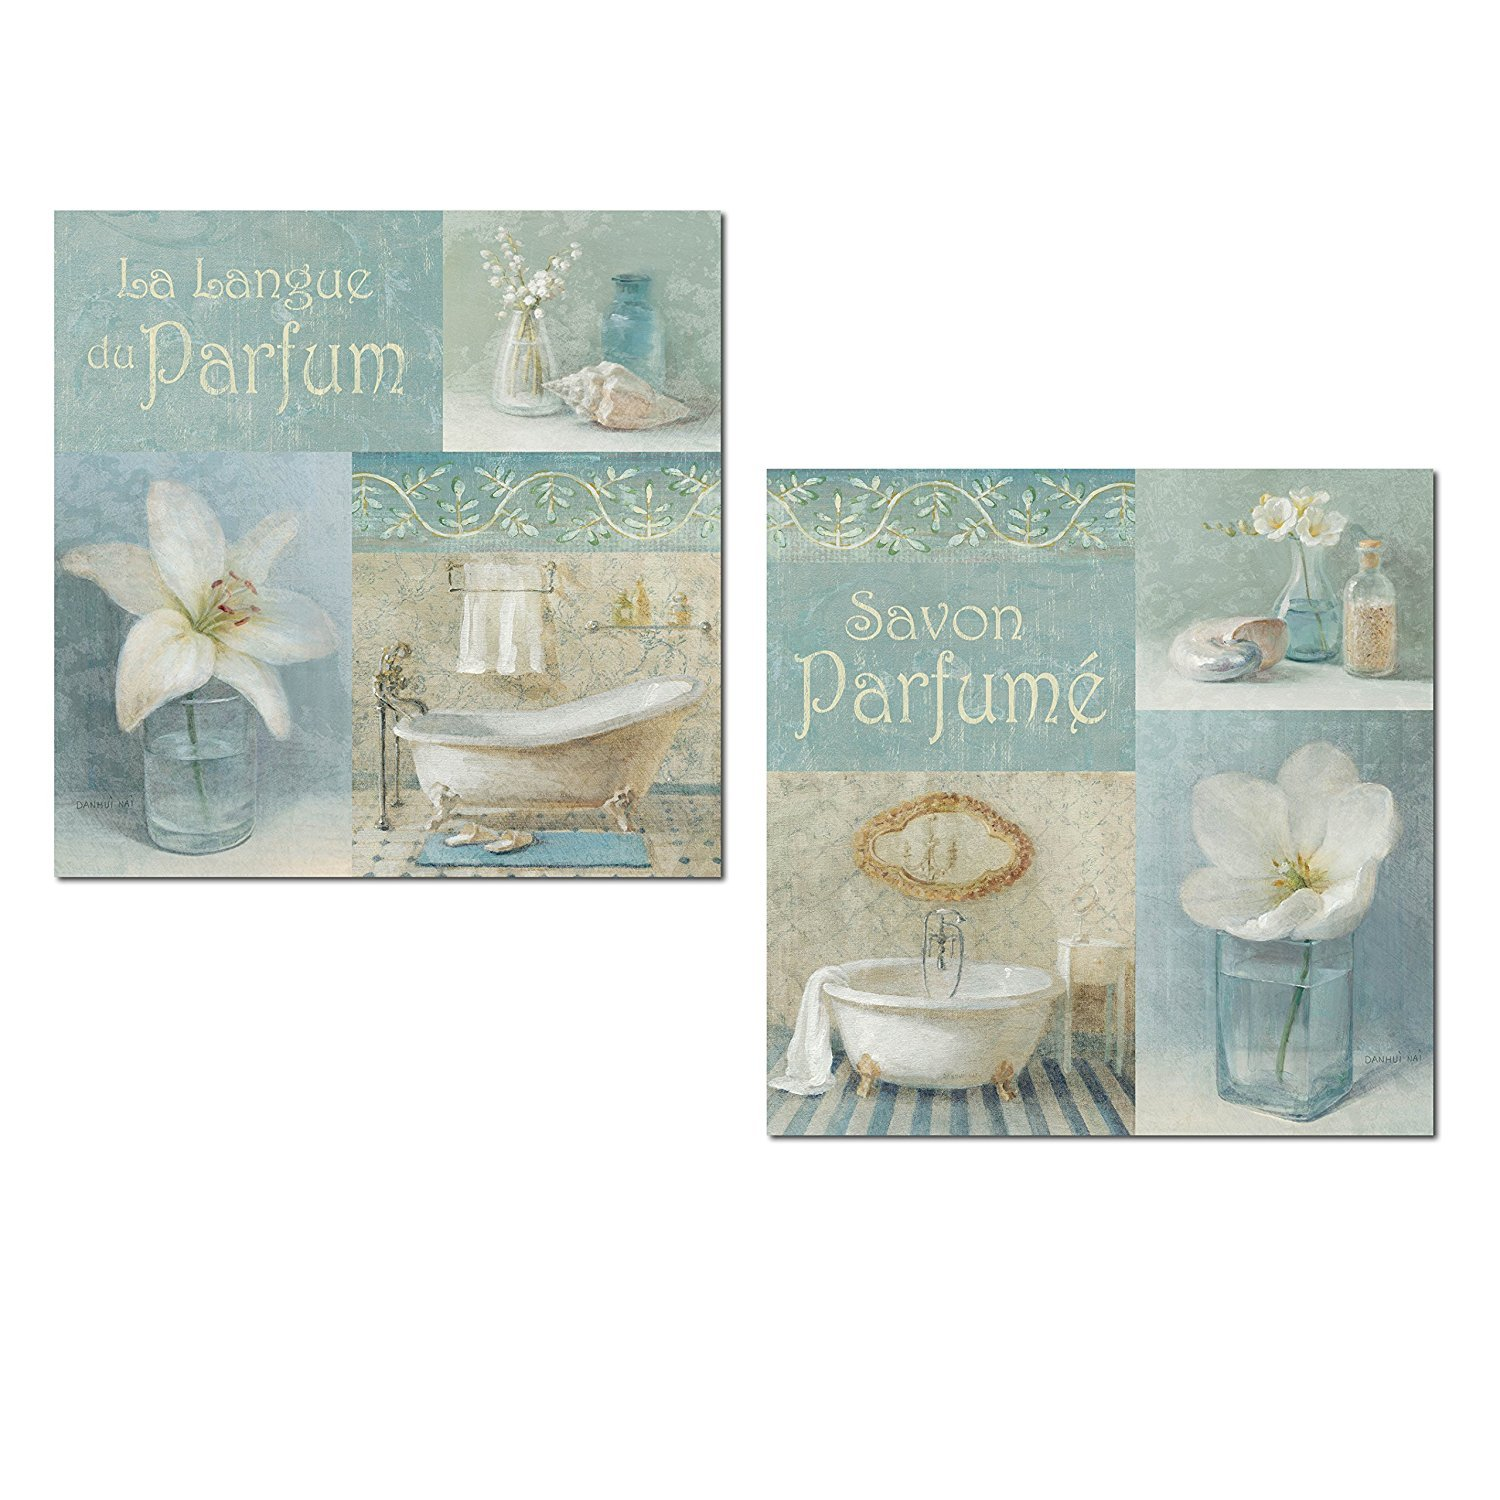 Amazon.com: Lovely Teal and Light Blue French Clawfoot Bathtub and ...